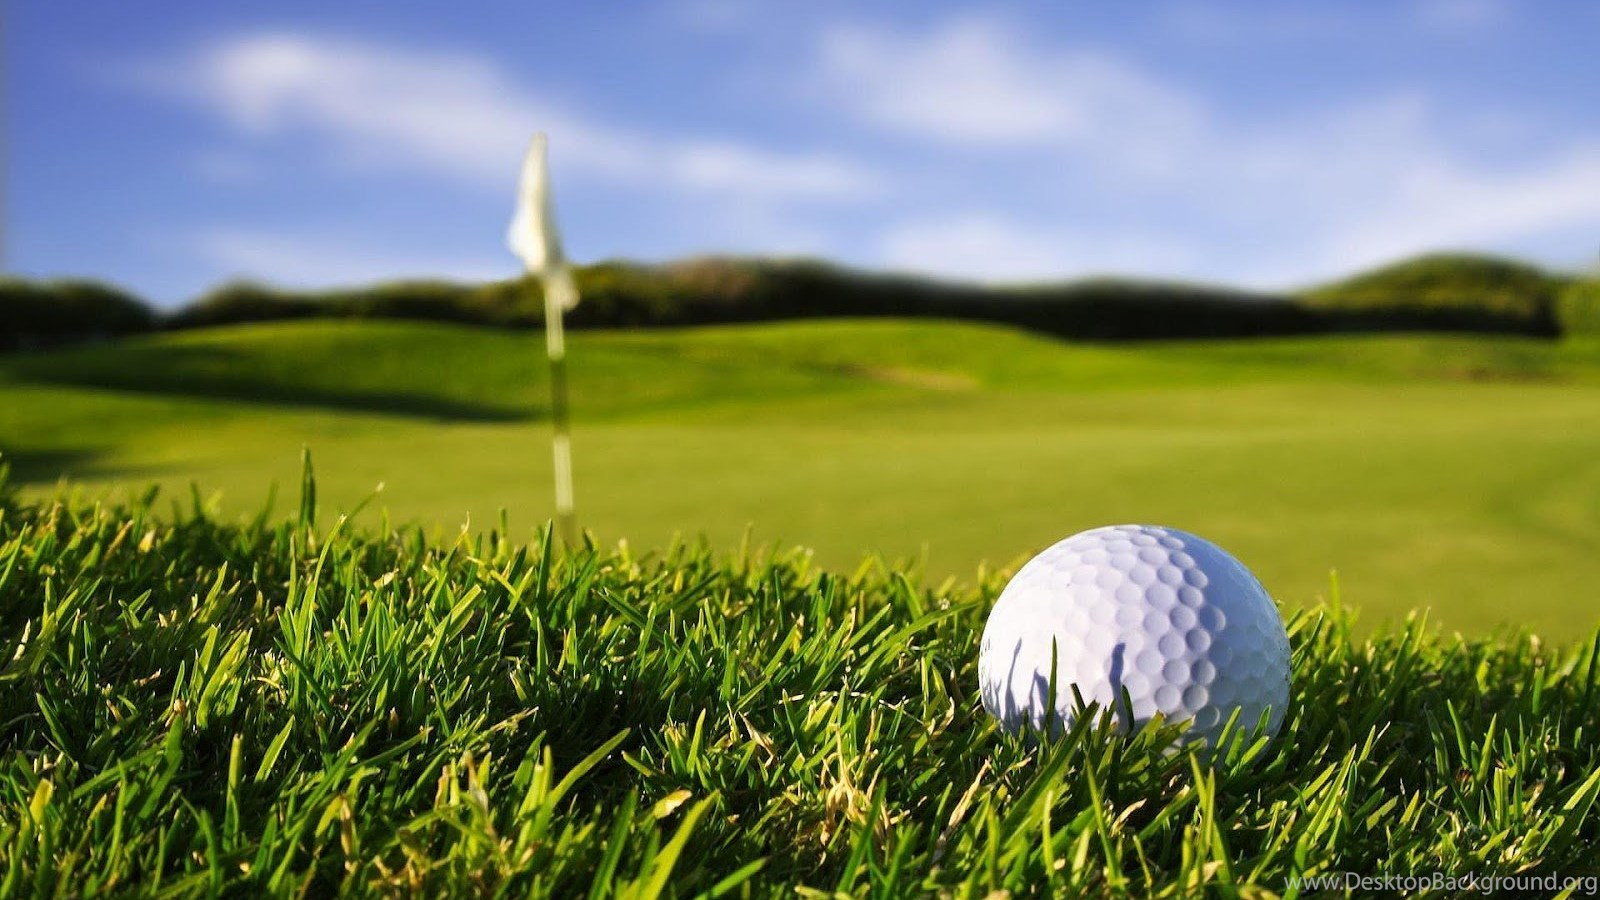 21 Hd Golf Course Wallpapers 3404 Hd Wallpapers 1095 Golf Hd Desktop Background